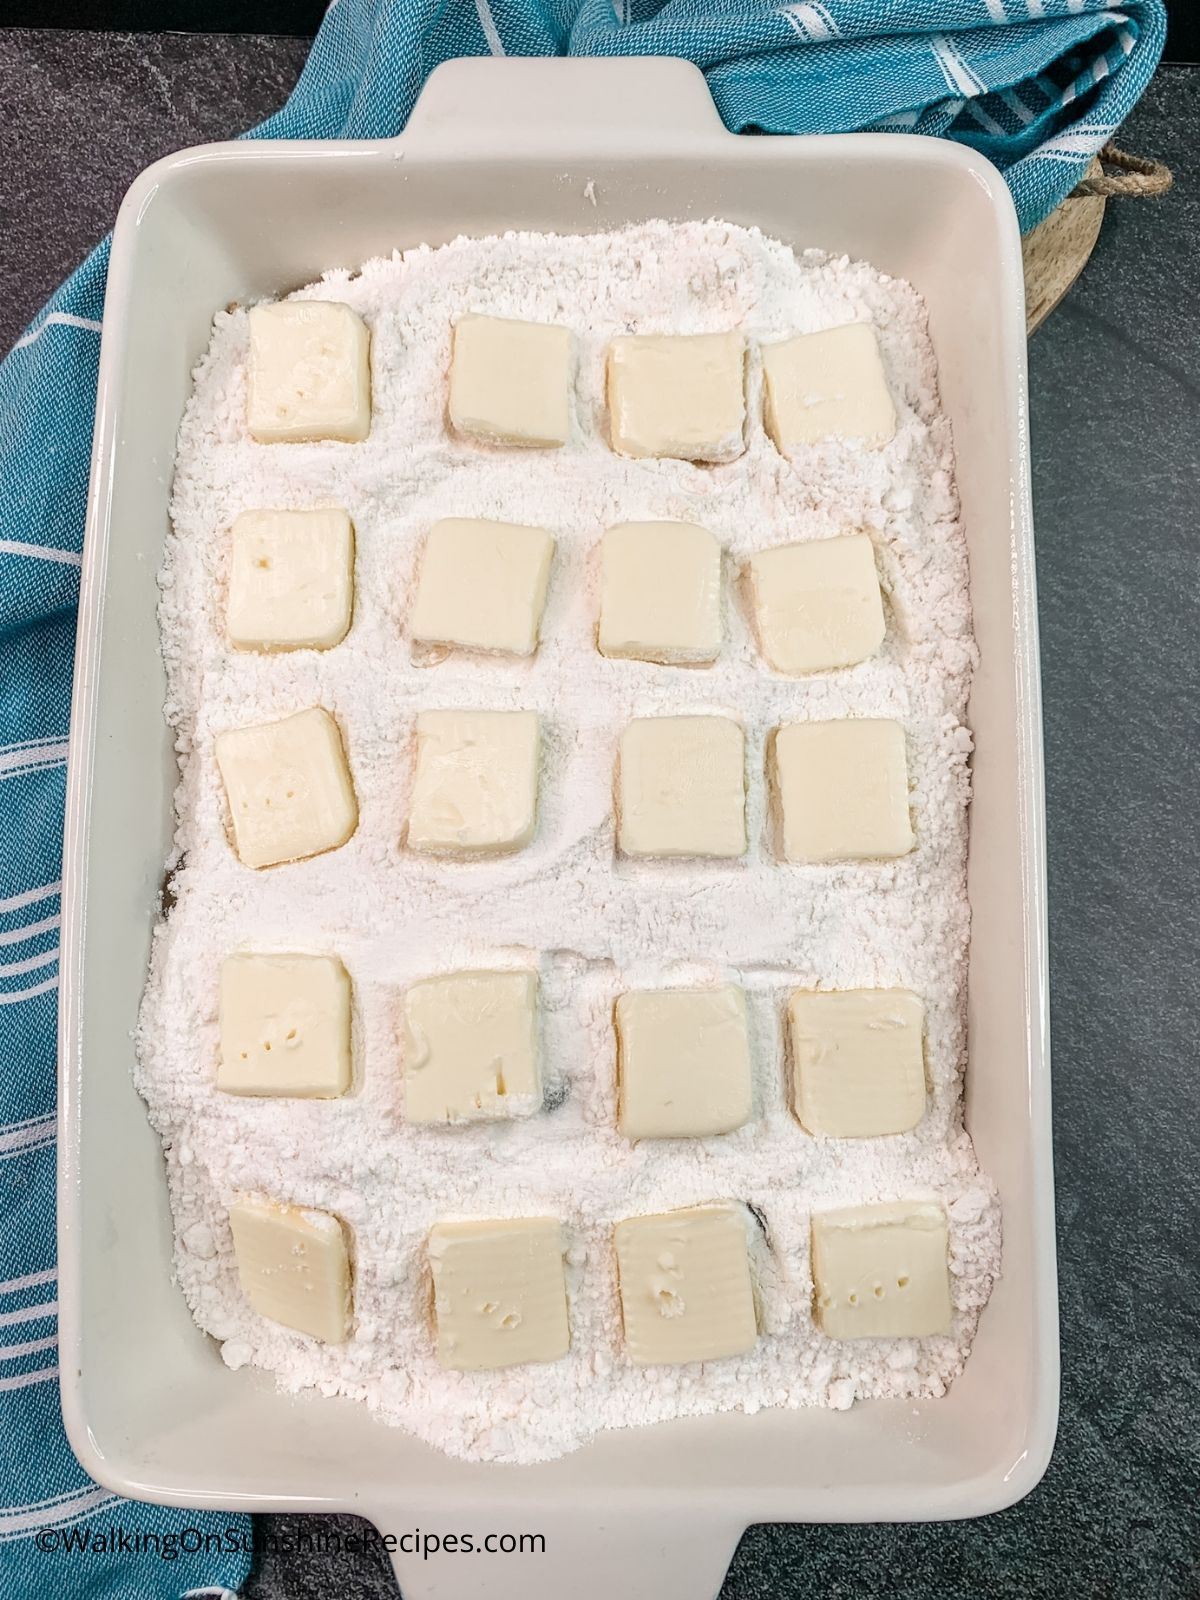 slices of butter on top of vanilla cake mix.